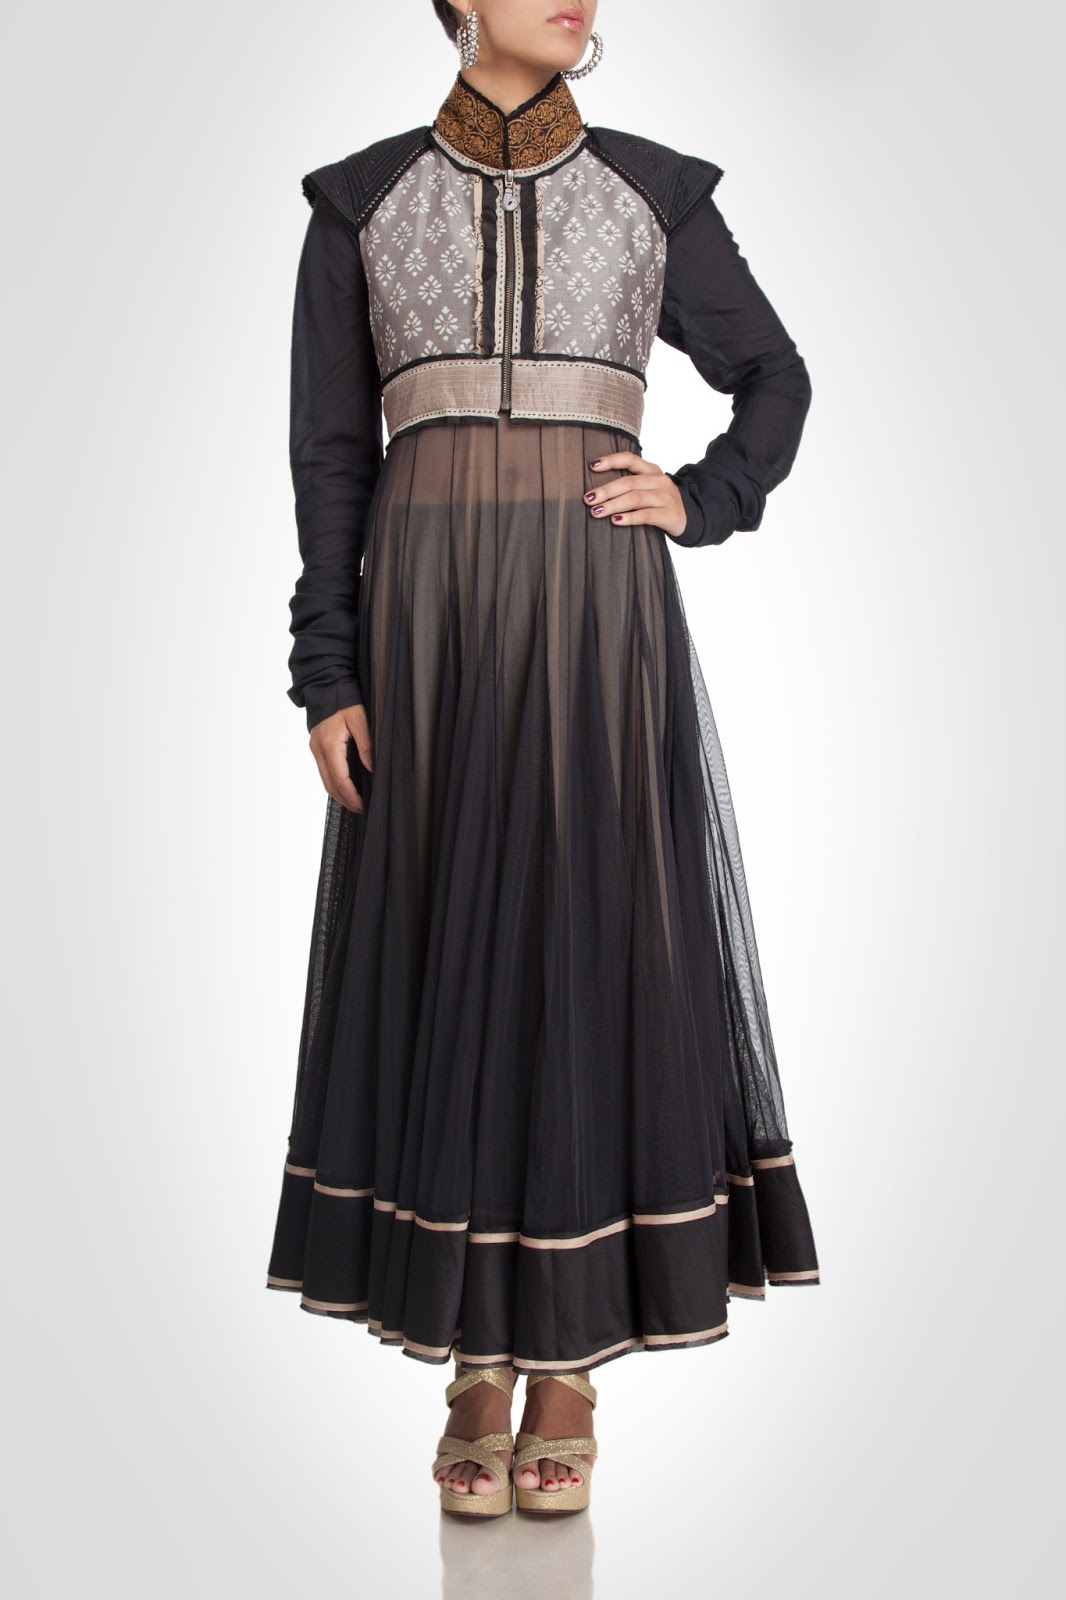 tarun tahiliani designer wear collection vega fashion mom